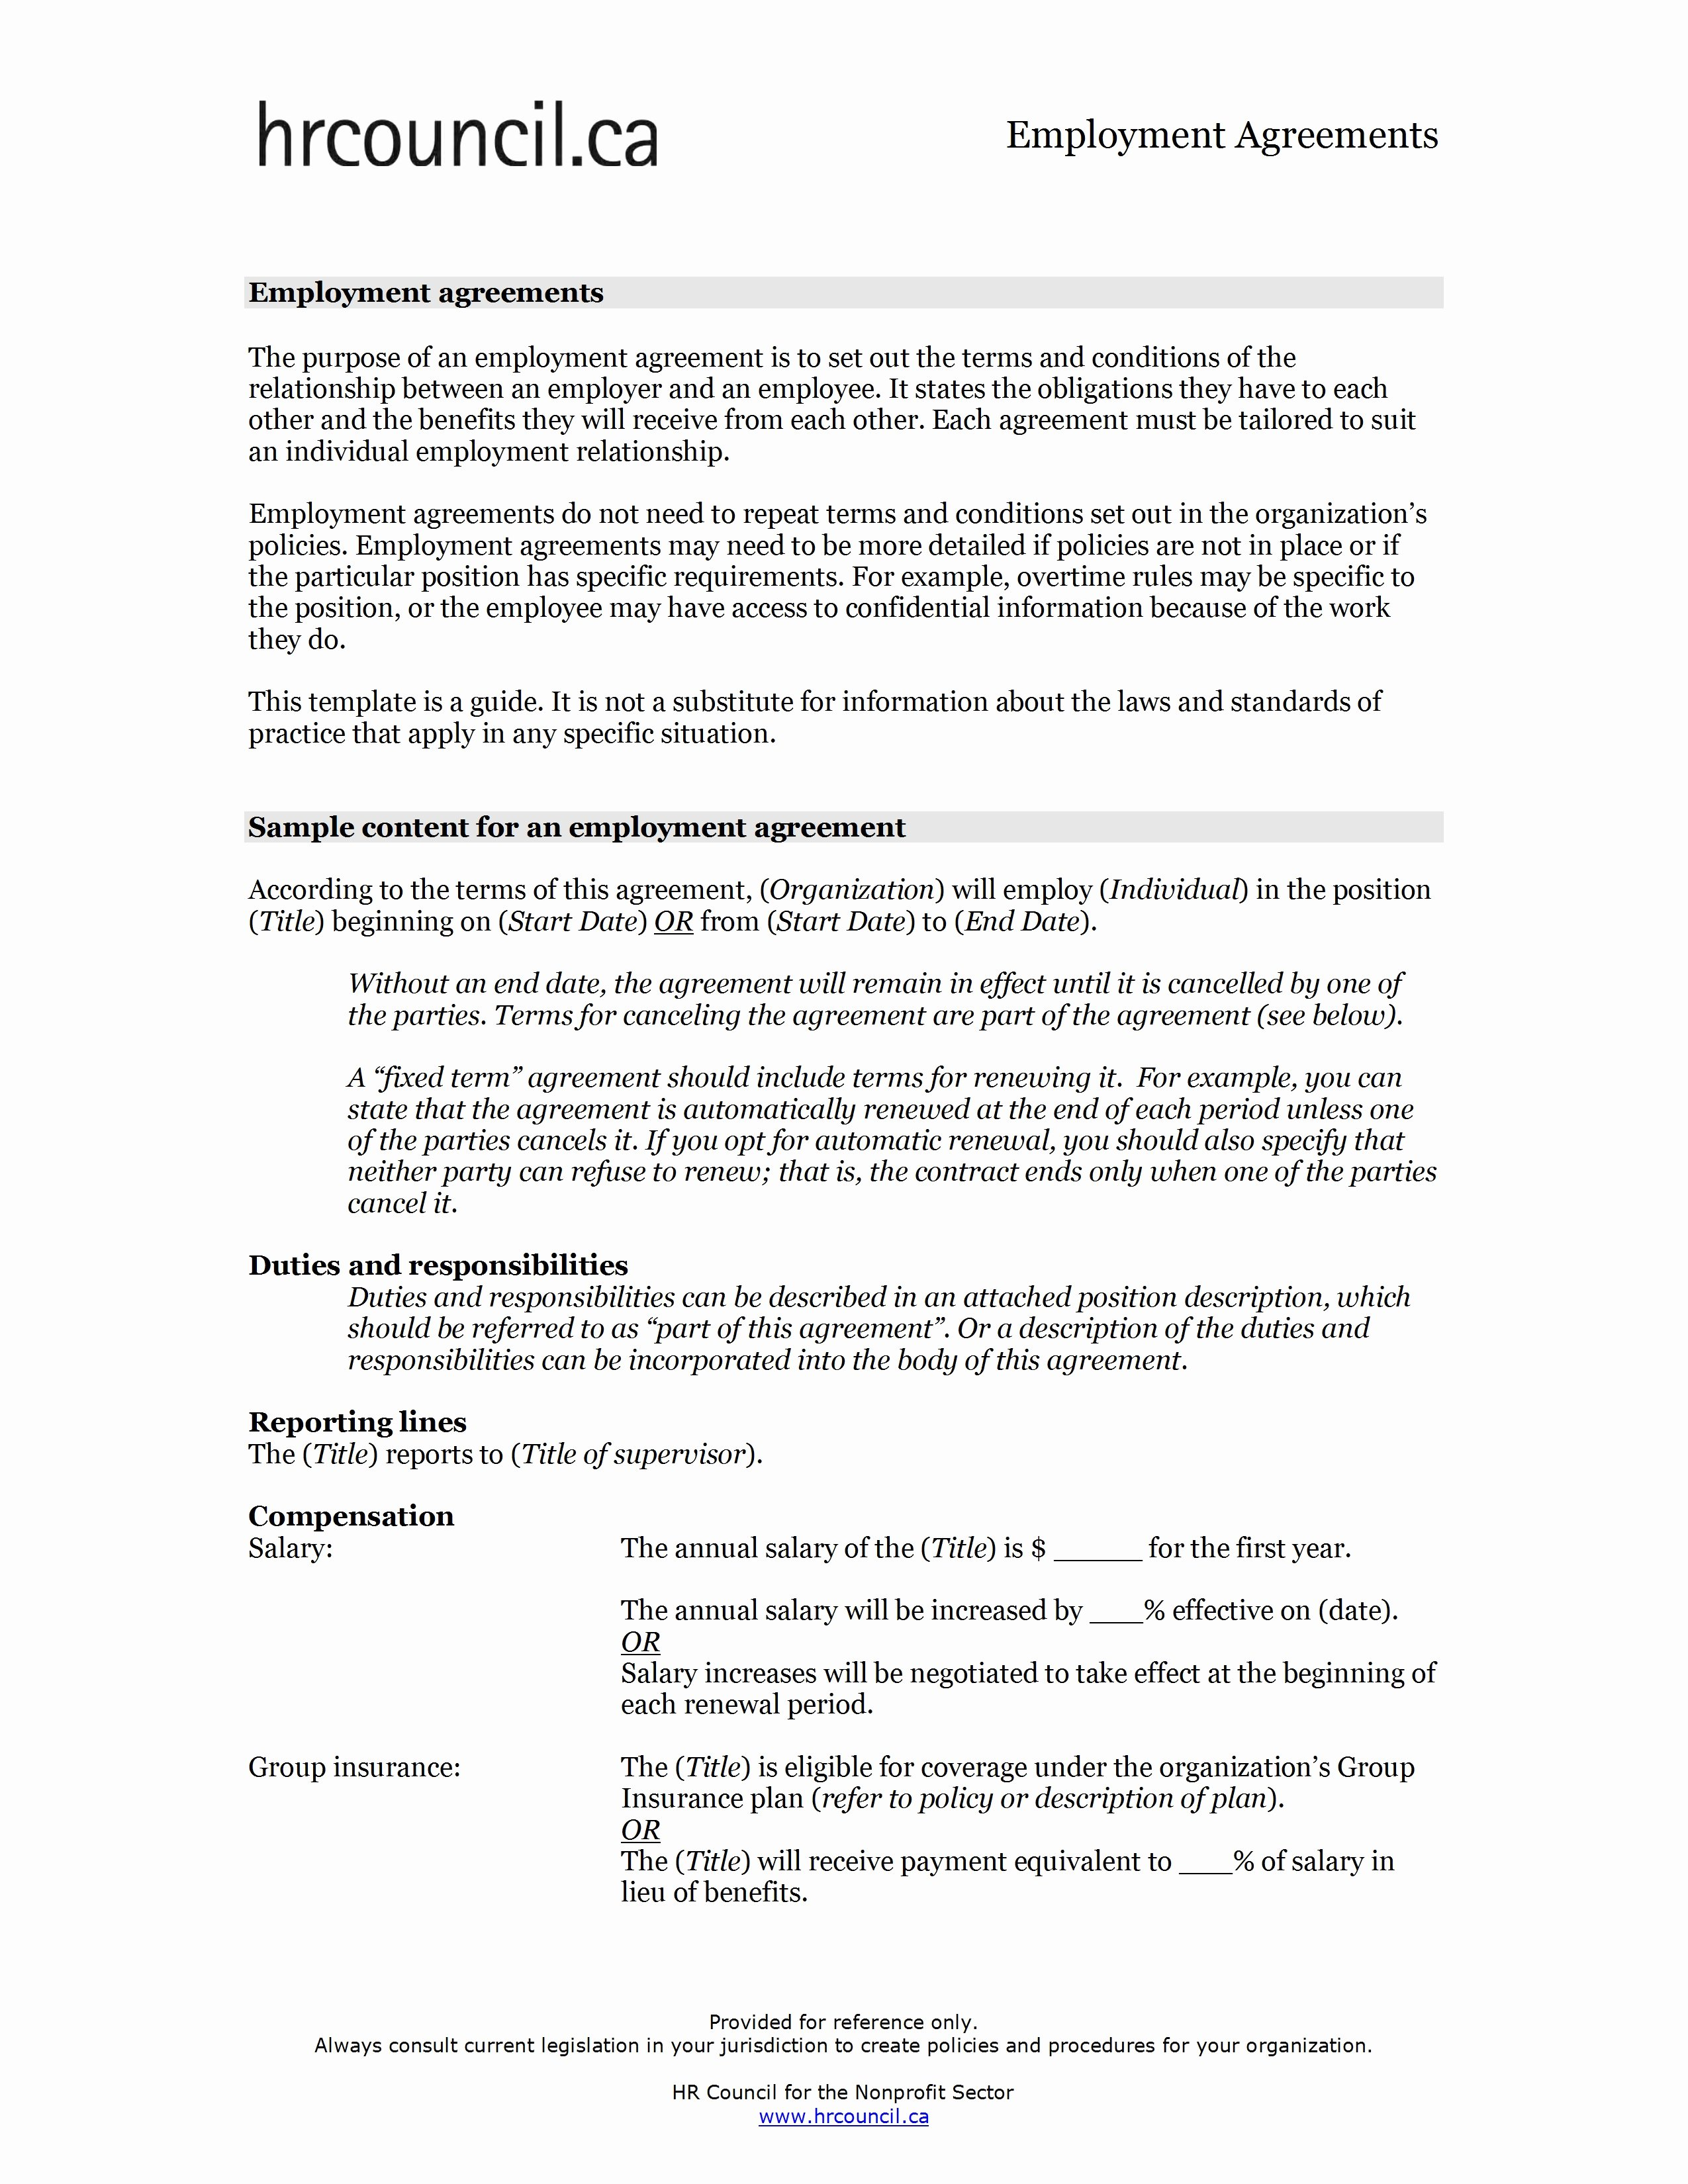 Employment Contract Template Word Unique Employment Contract Sample